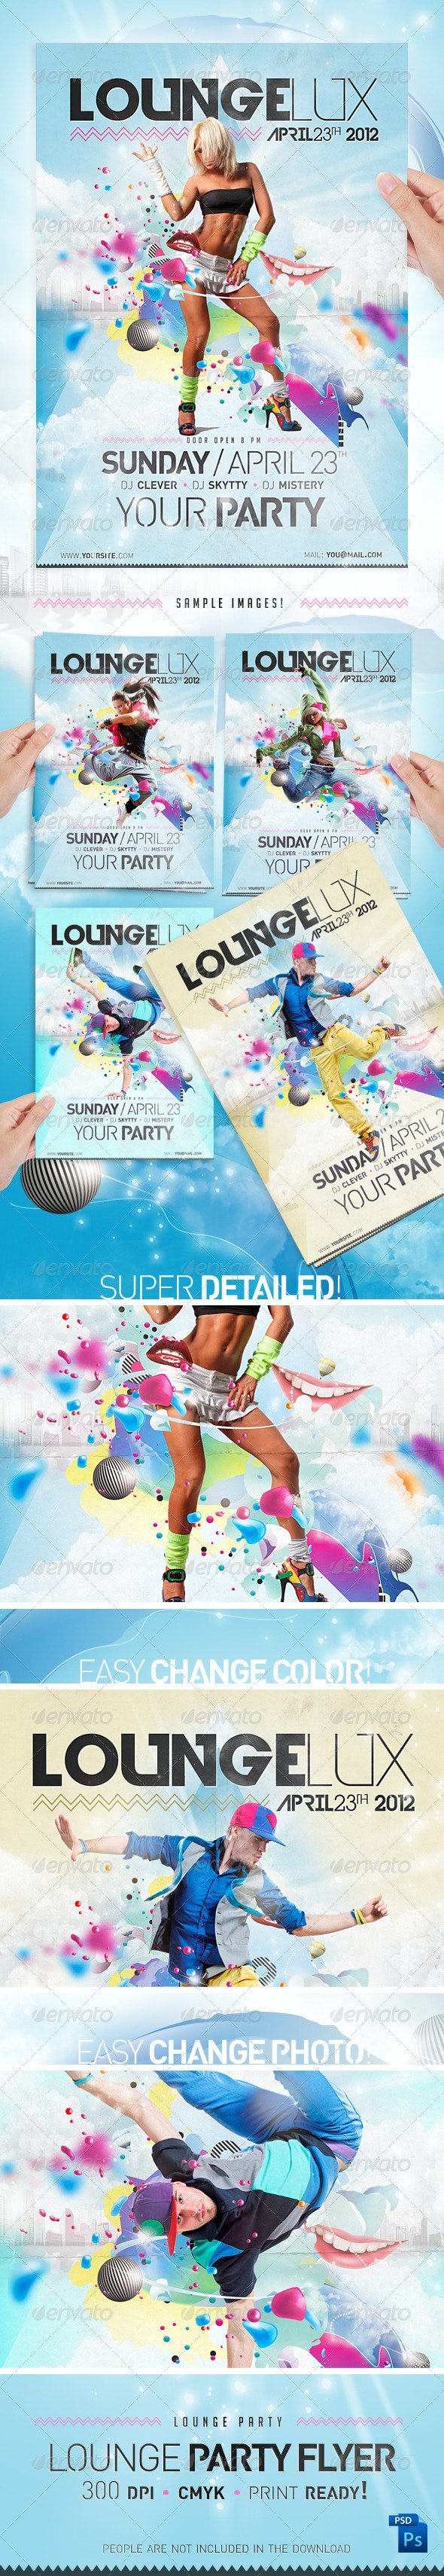 Lounge Party Flyer Template - Clubs & Parties Events